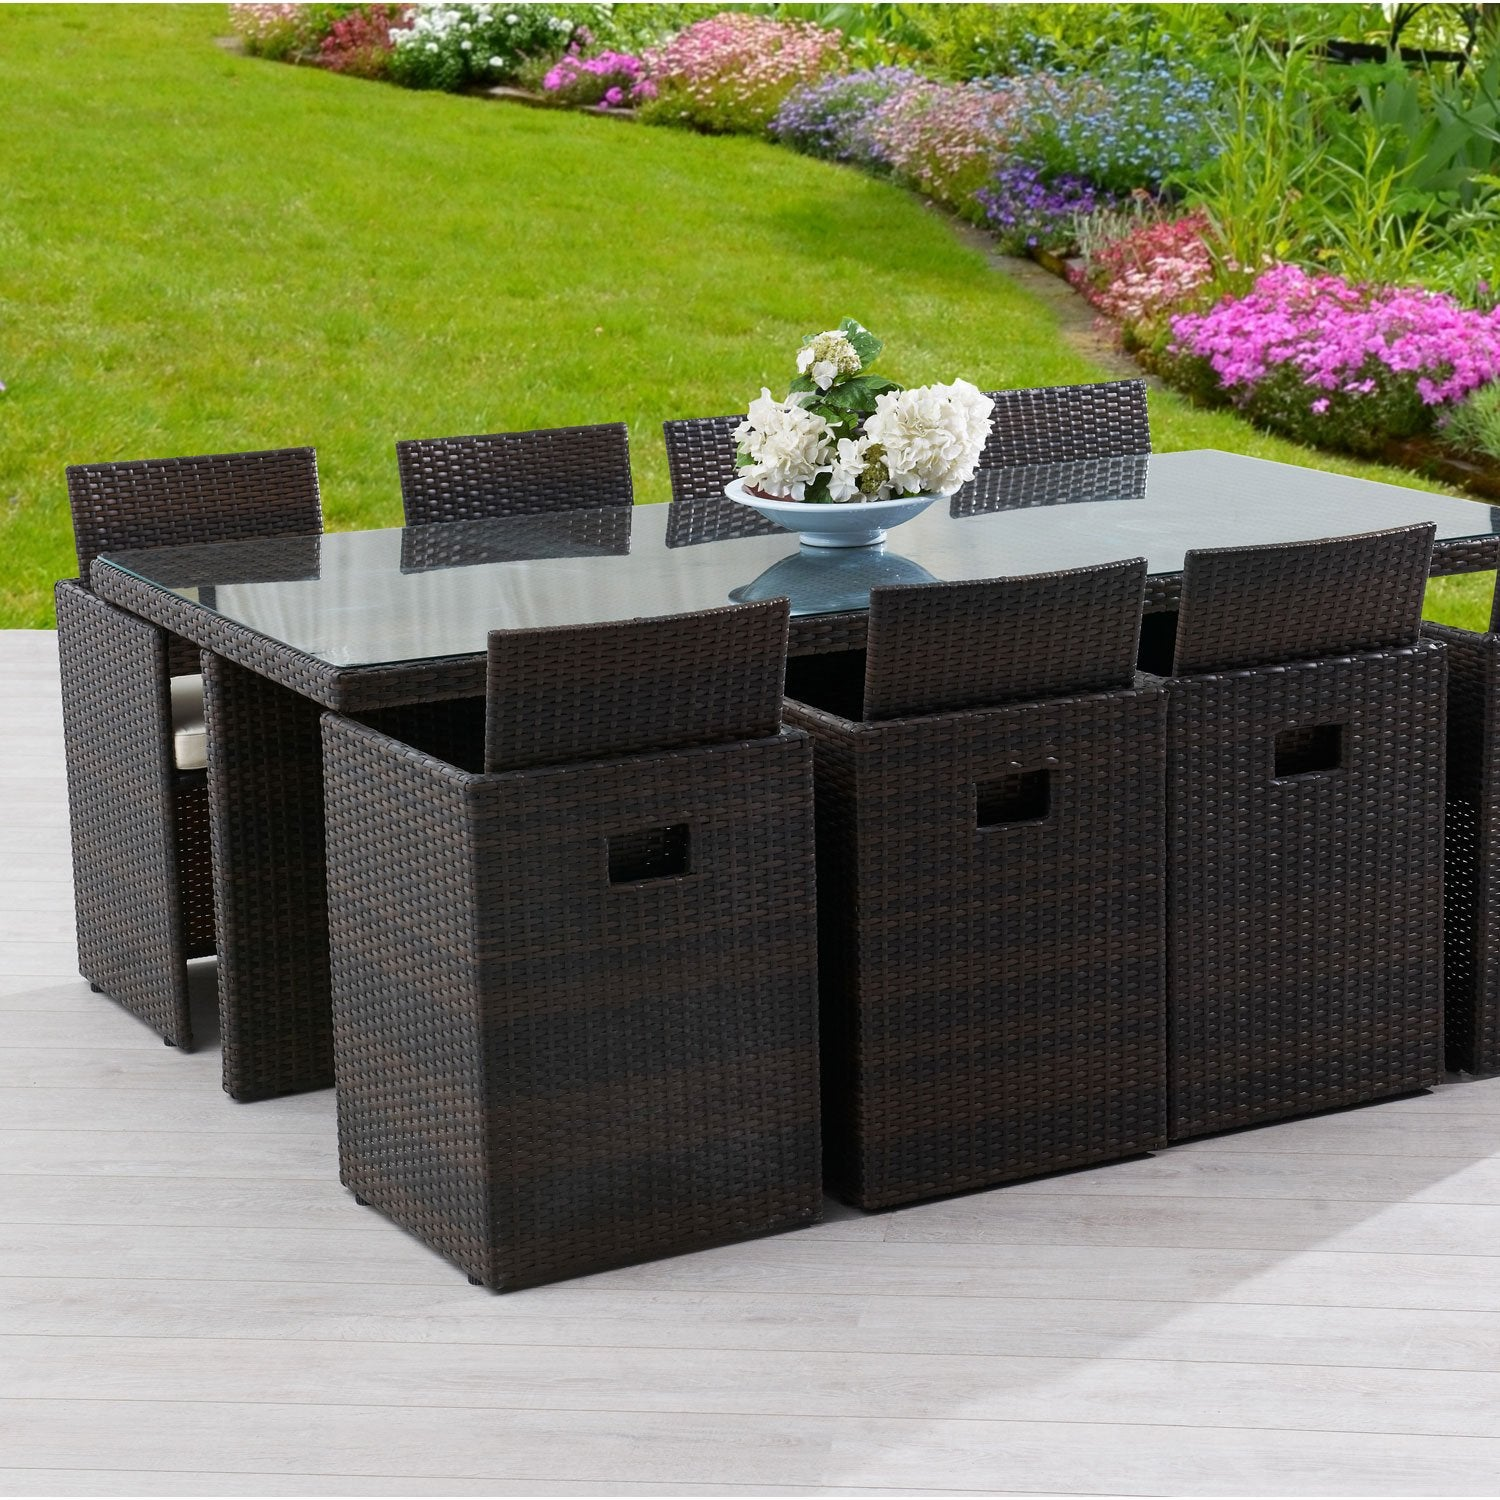 Salon de jardin encastrable r sine tress e marron 1 table - Salon de jardin resine ...